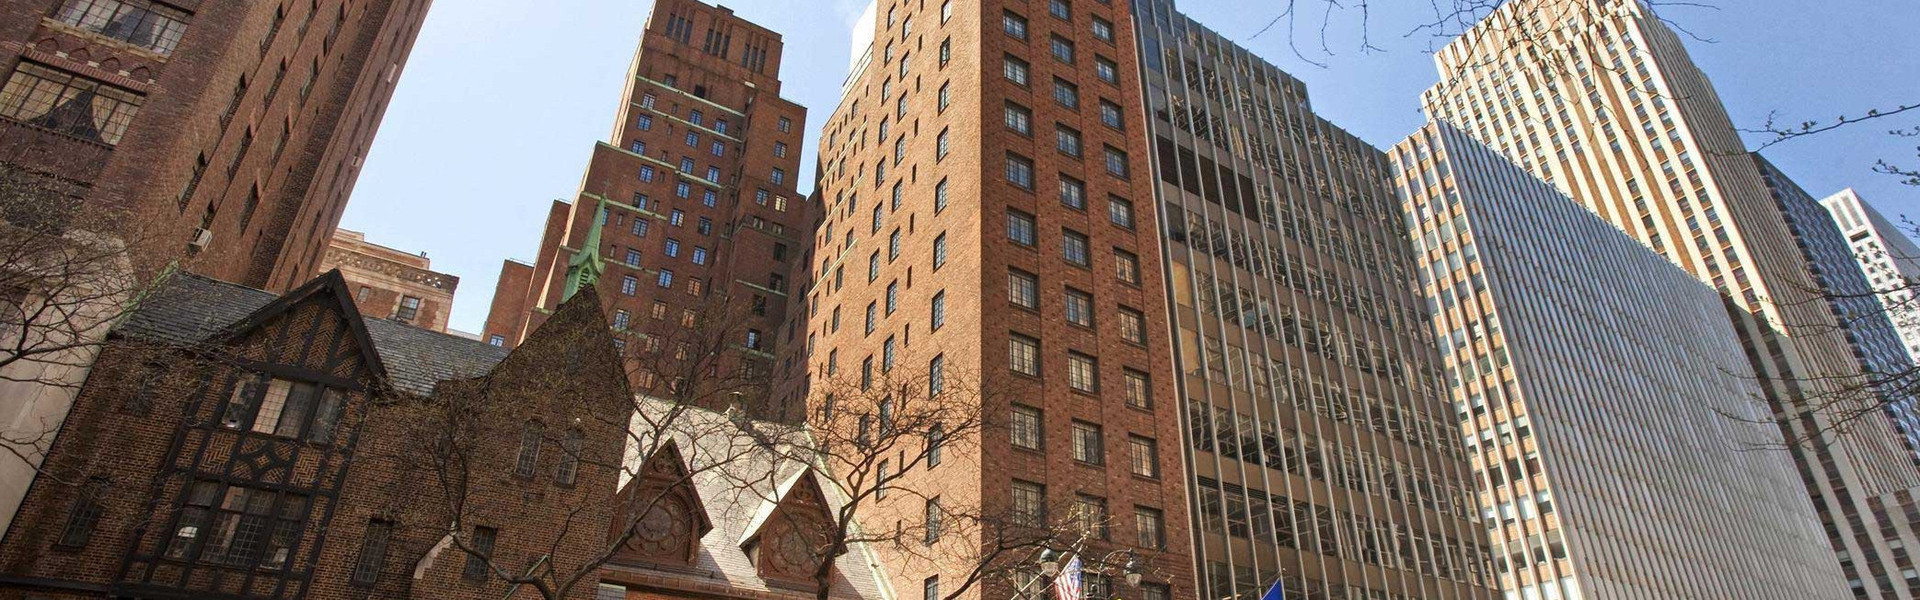 AAA Discounts on Hotels in NYC | Westgate New York City | AAA Membership Hotel Discounts